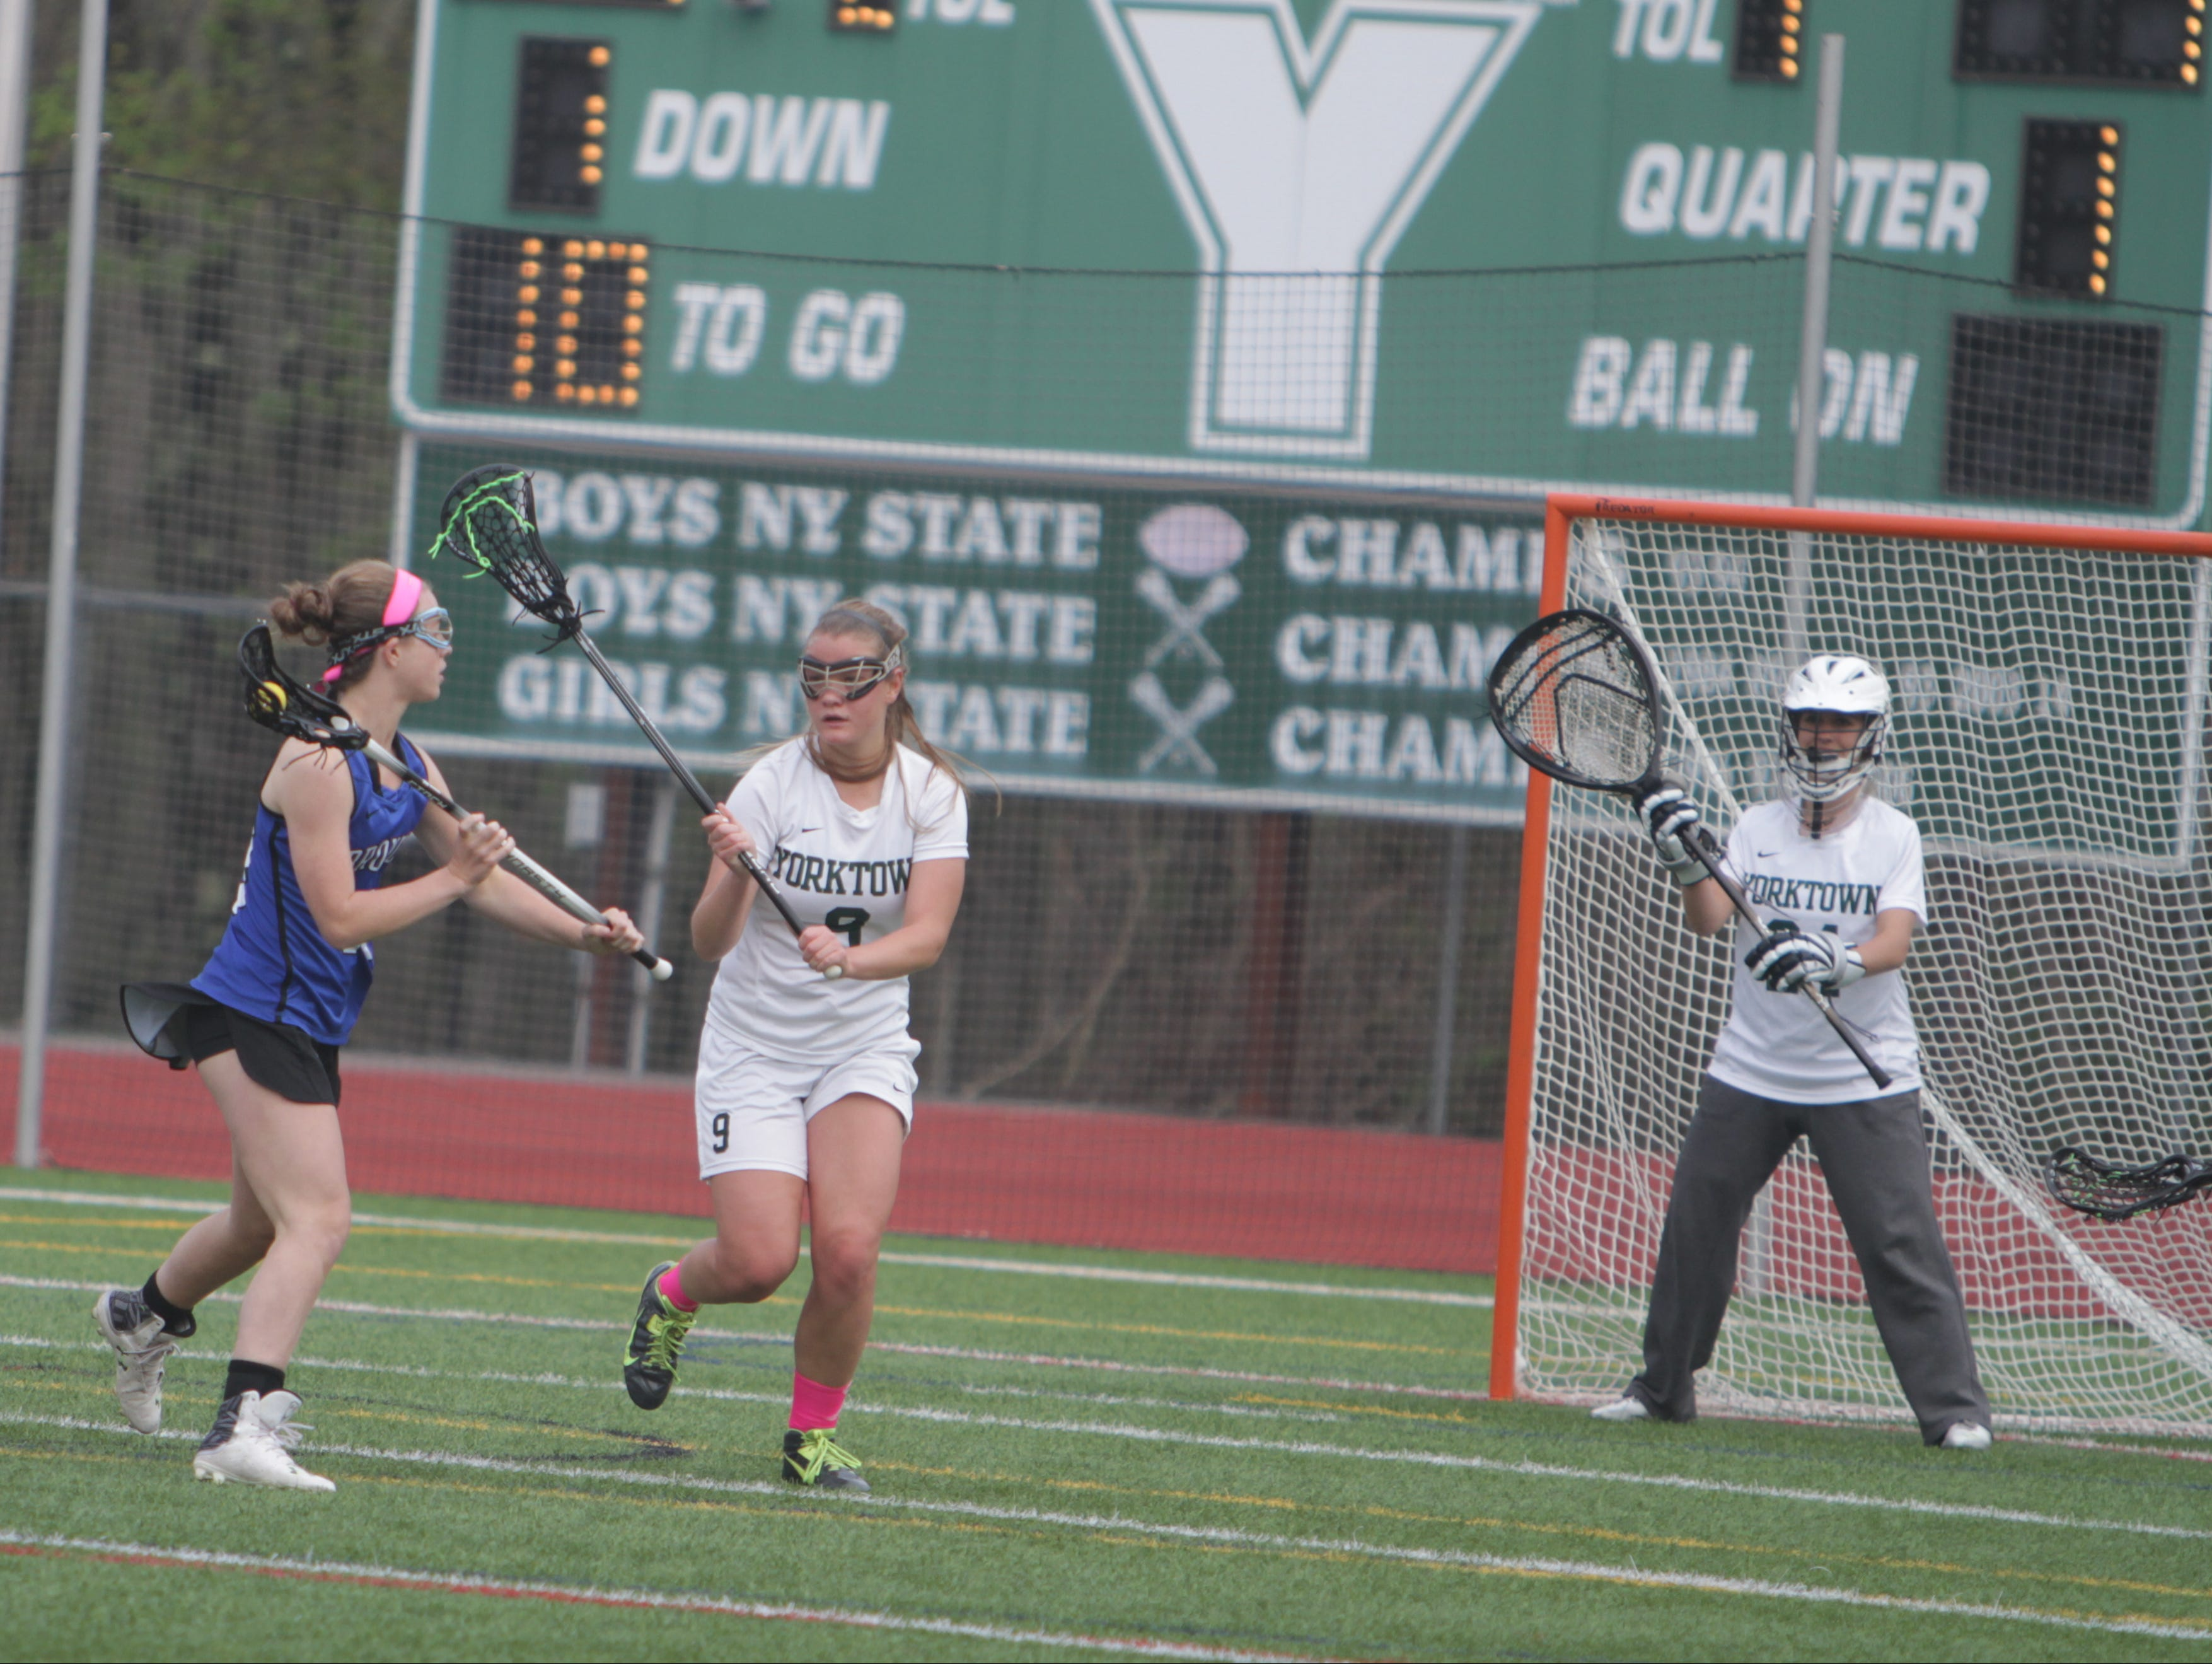 Action during a Section 1 girls lacrosse game between Yorktown and Bronxville at Charlie Murphy Field at Yorktown High School on Monday, May 2nd, 2016. Yorktown won 12-7.